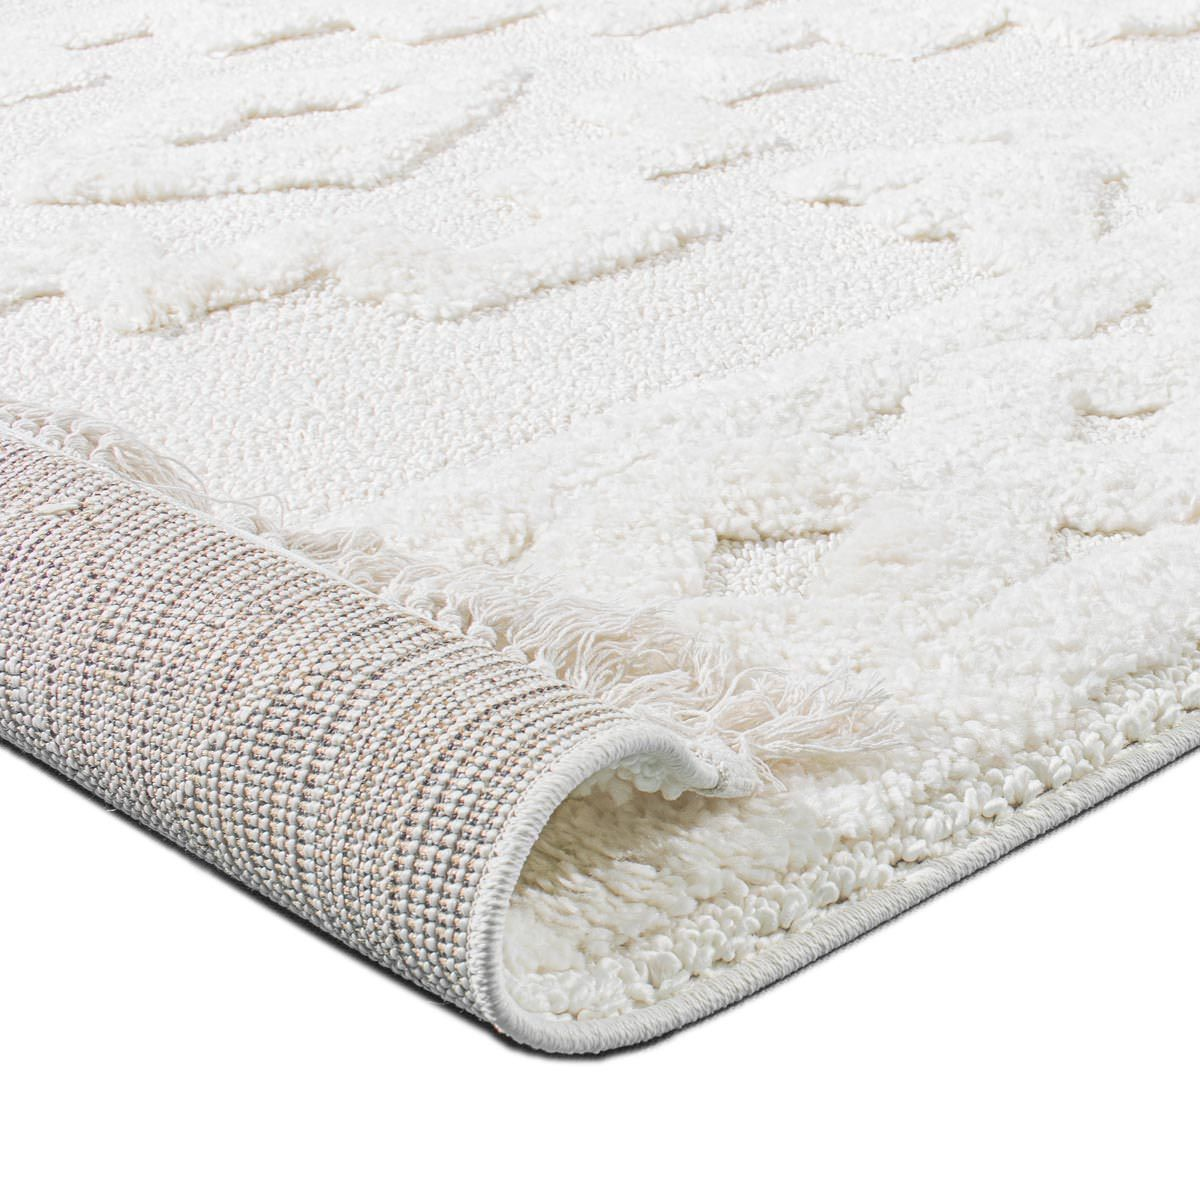 Atlas Rug 10 Cream Runner - Fringes 6